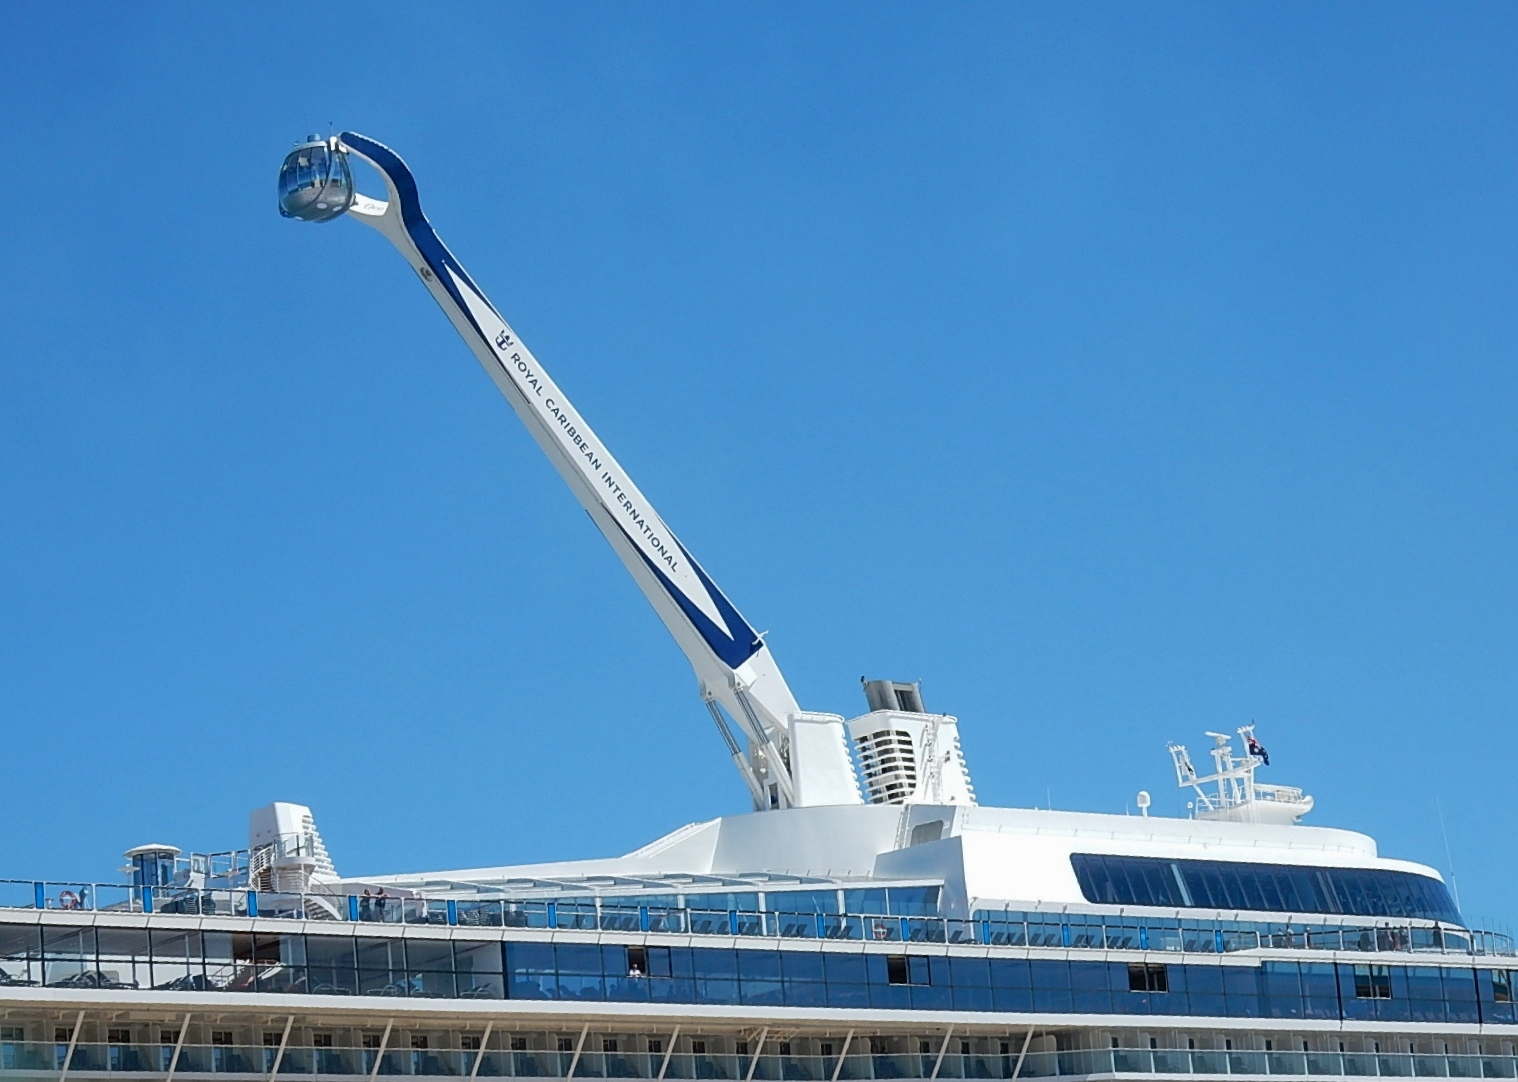 5extreme-on-board-ovationoftheseas.jpg